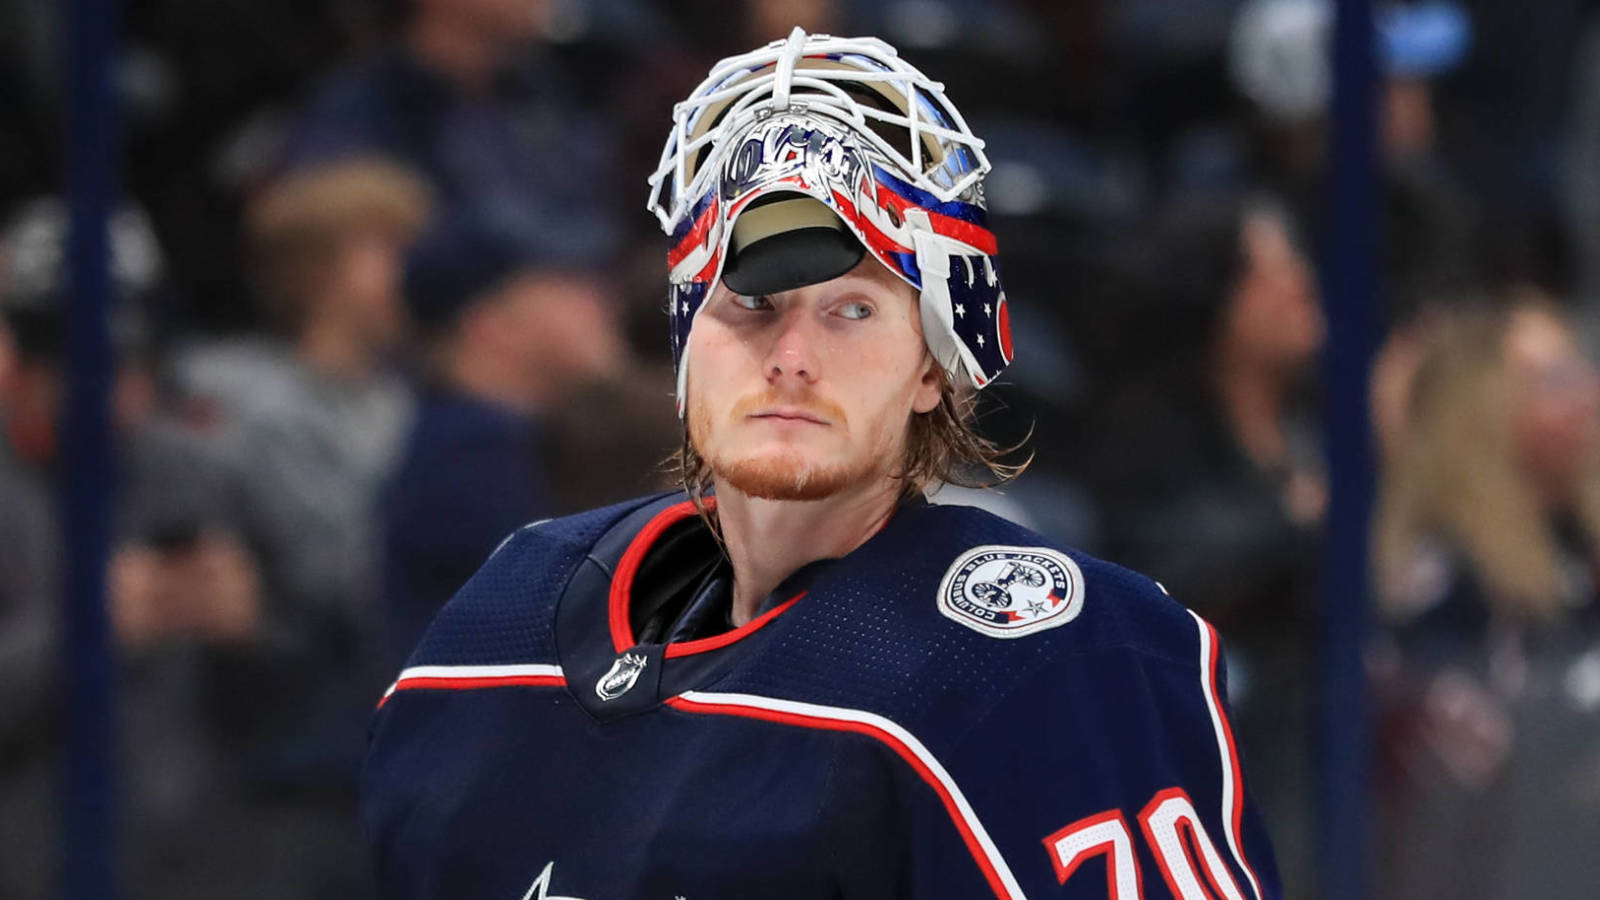 Blue Jackets send goalie Joonas Korpisalo to AHL on conditioning loan